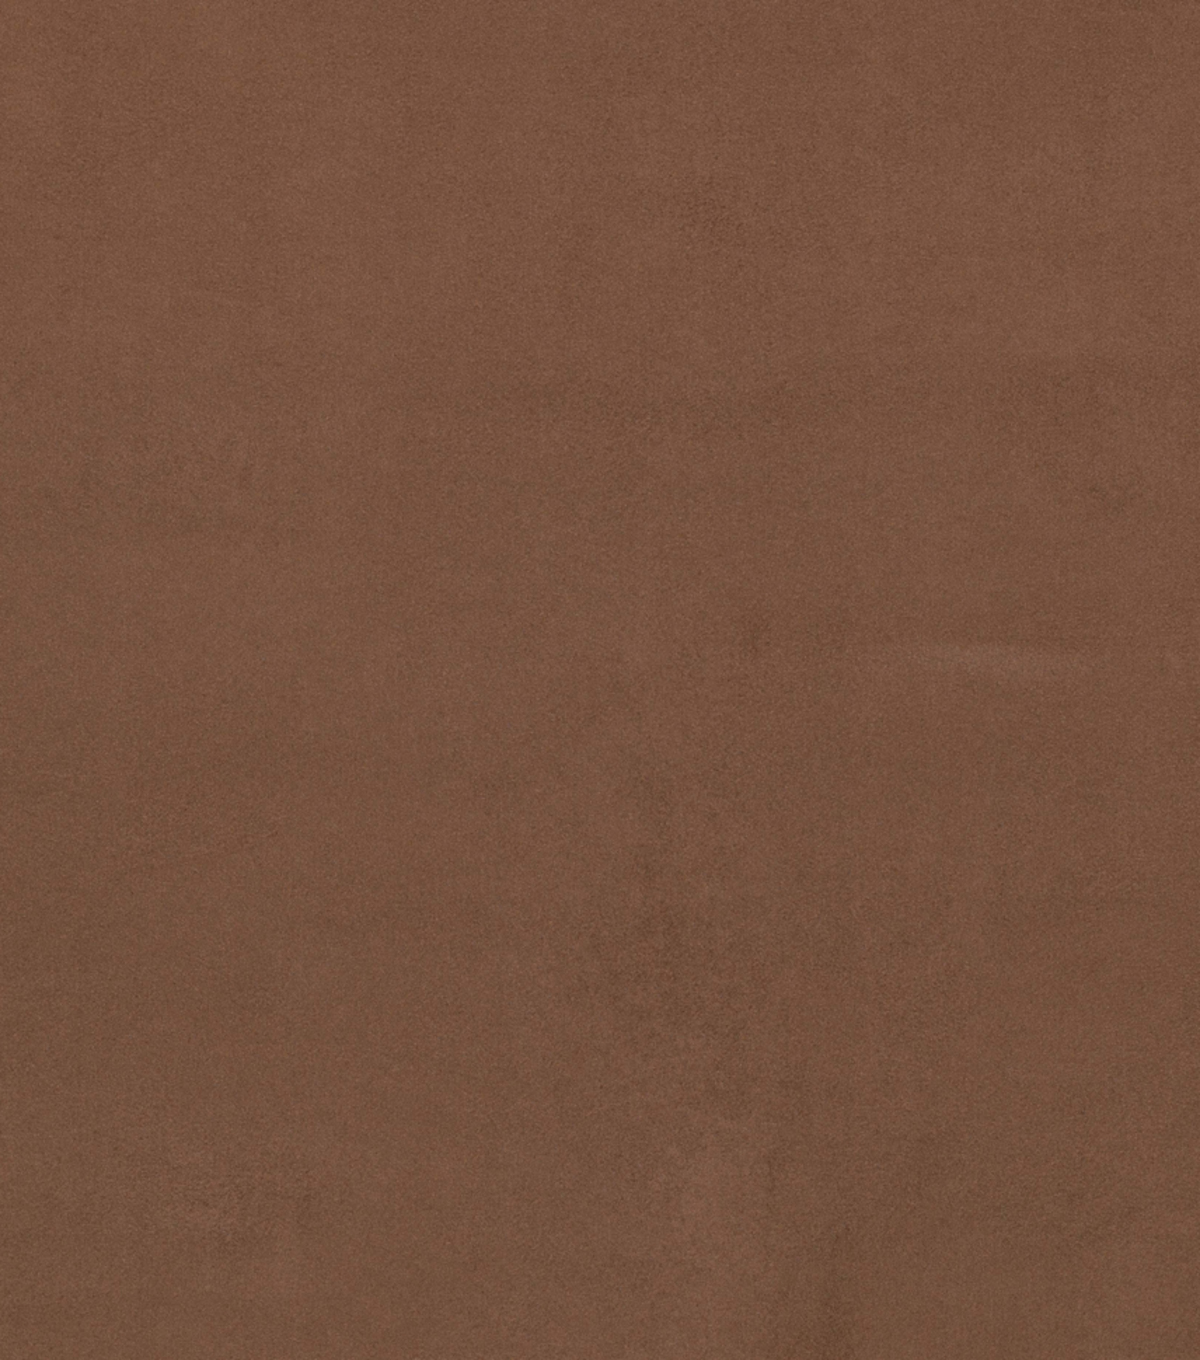 Home Decor 8\u0022x8\u0022 Fabric Swatch-Smart Suede Coffee